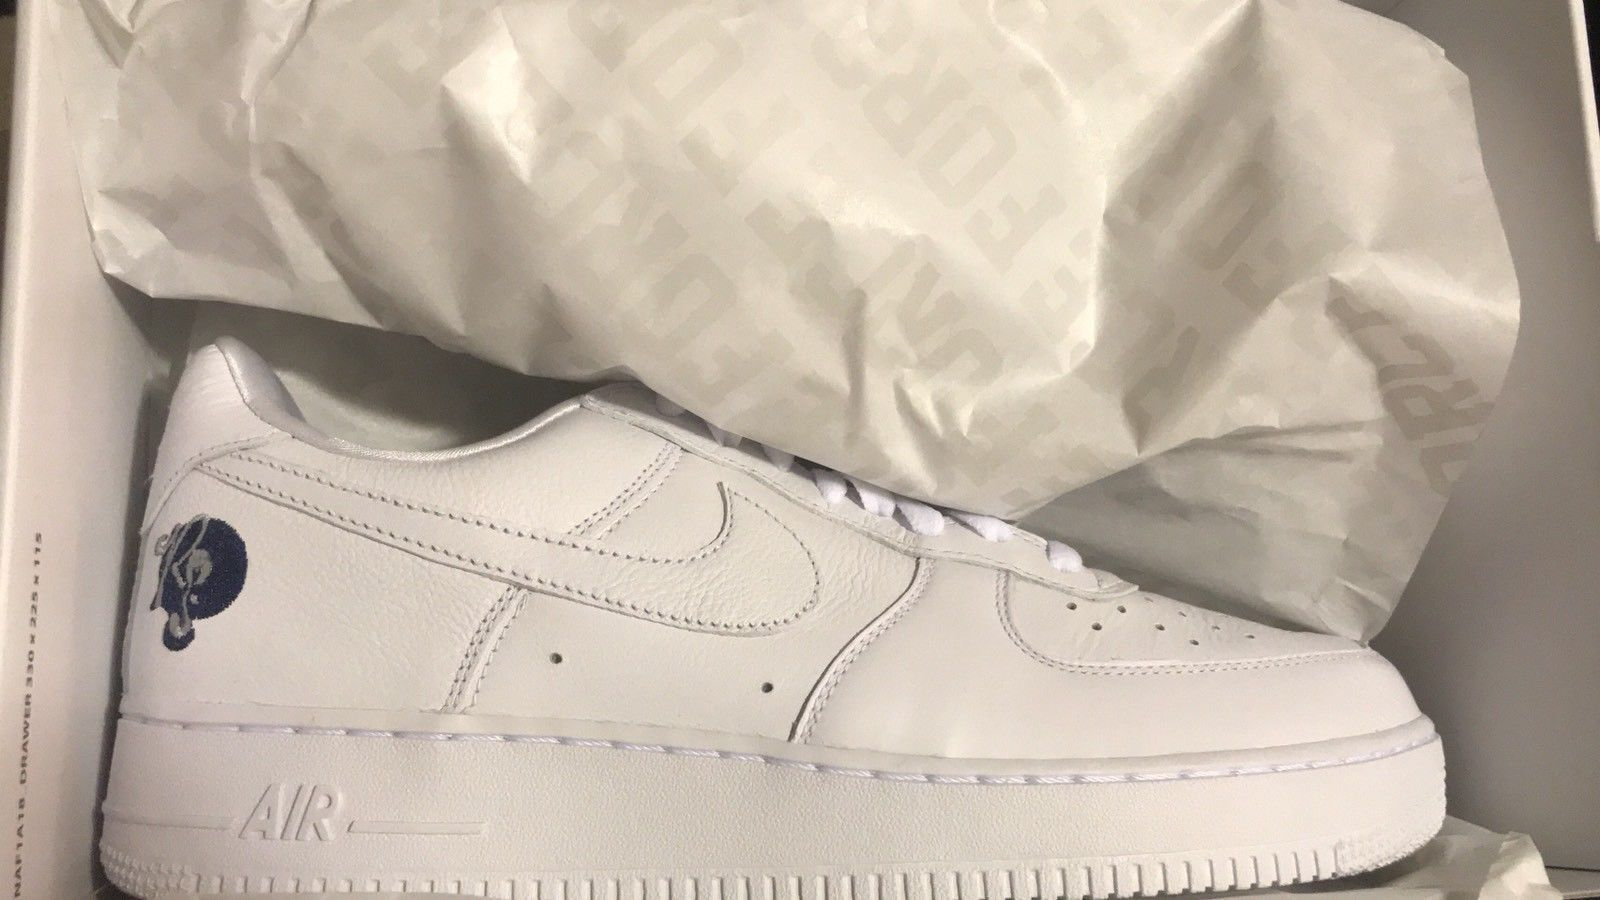 Nike Air One Force 1 One Air Low 07 ROC A FELLA blanc ROCAFELLA AO1070 2bcdbe